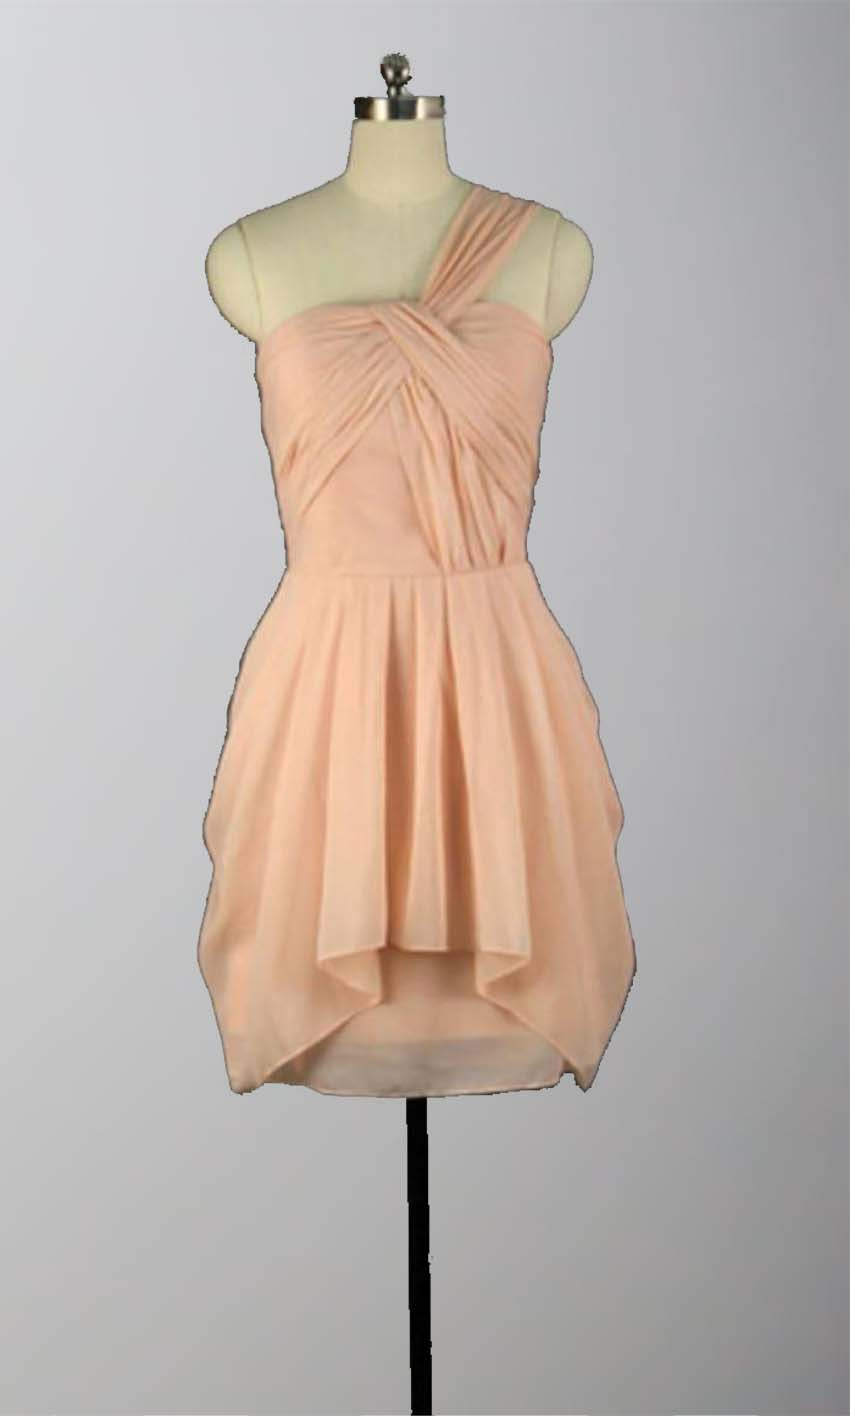 Peach Chiffon Cheap Short Bridesmaid Dresses KSP315 [KSP315] - £79.00 : Cheap Prom Dresses Uk, Bridesmaid Dresses, 2014 Prom & Evening Dresses, Look for cheap elegant prom dresses 2014, cocktail gowns, or dresses for special occasions? kissprom.co.uk offers various bridesmaid dresses, evening dress, free shipping to UK etc.